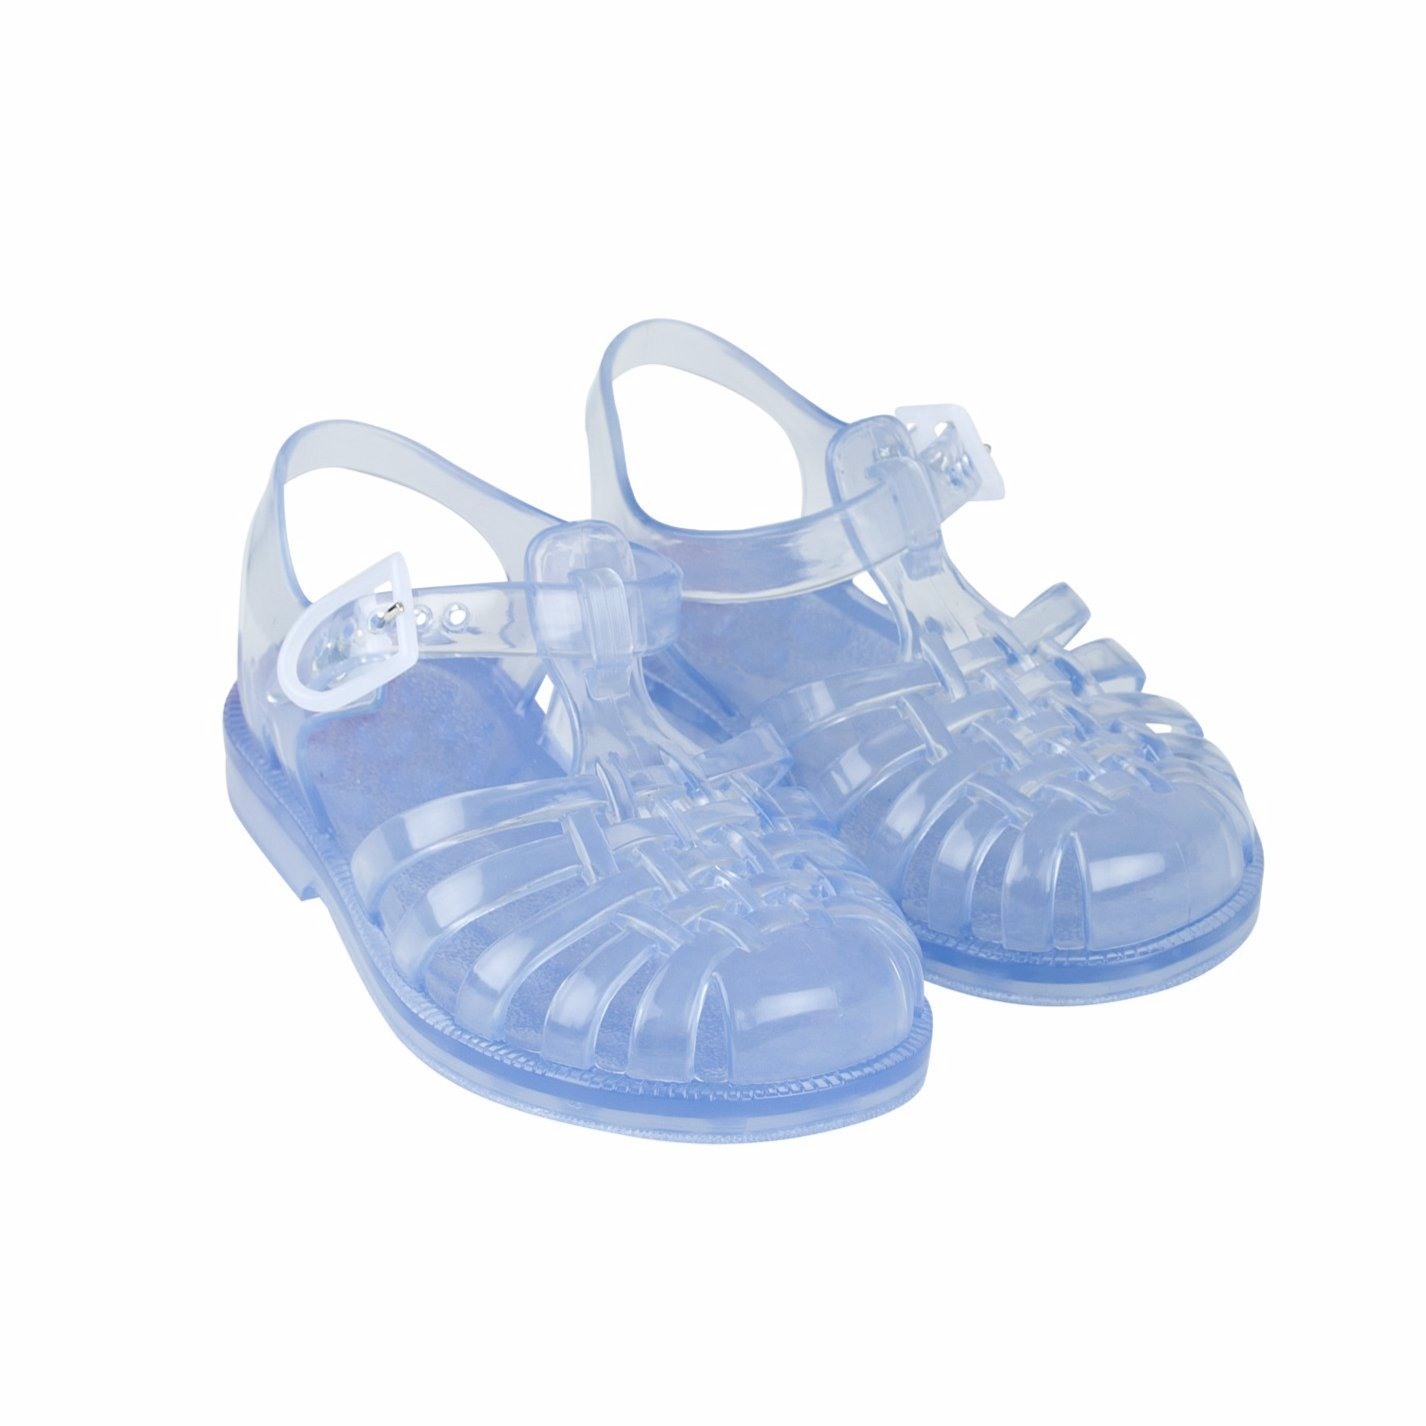 jelly sandals